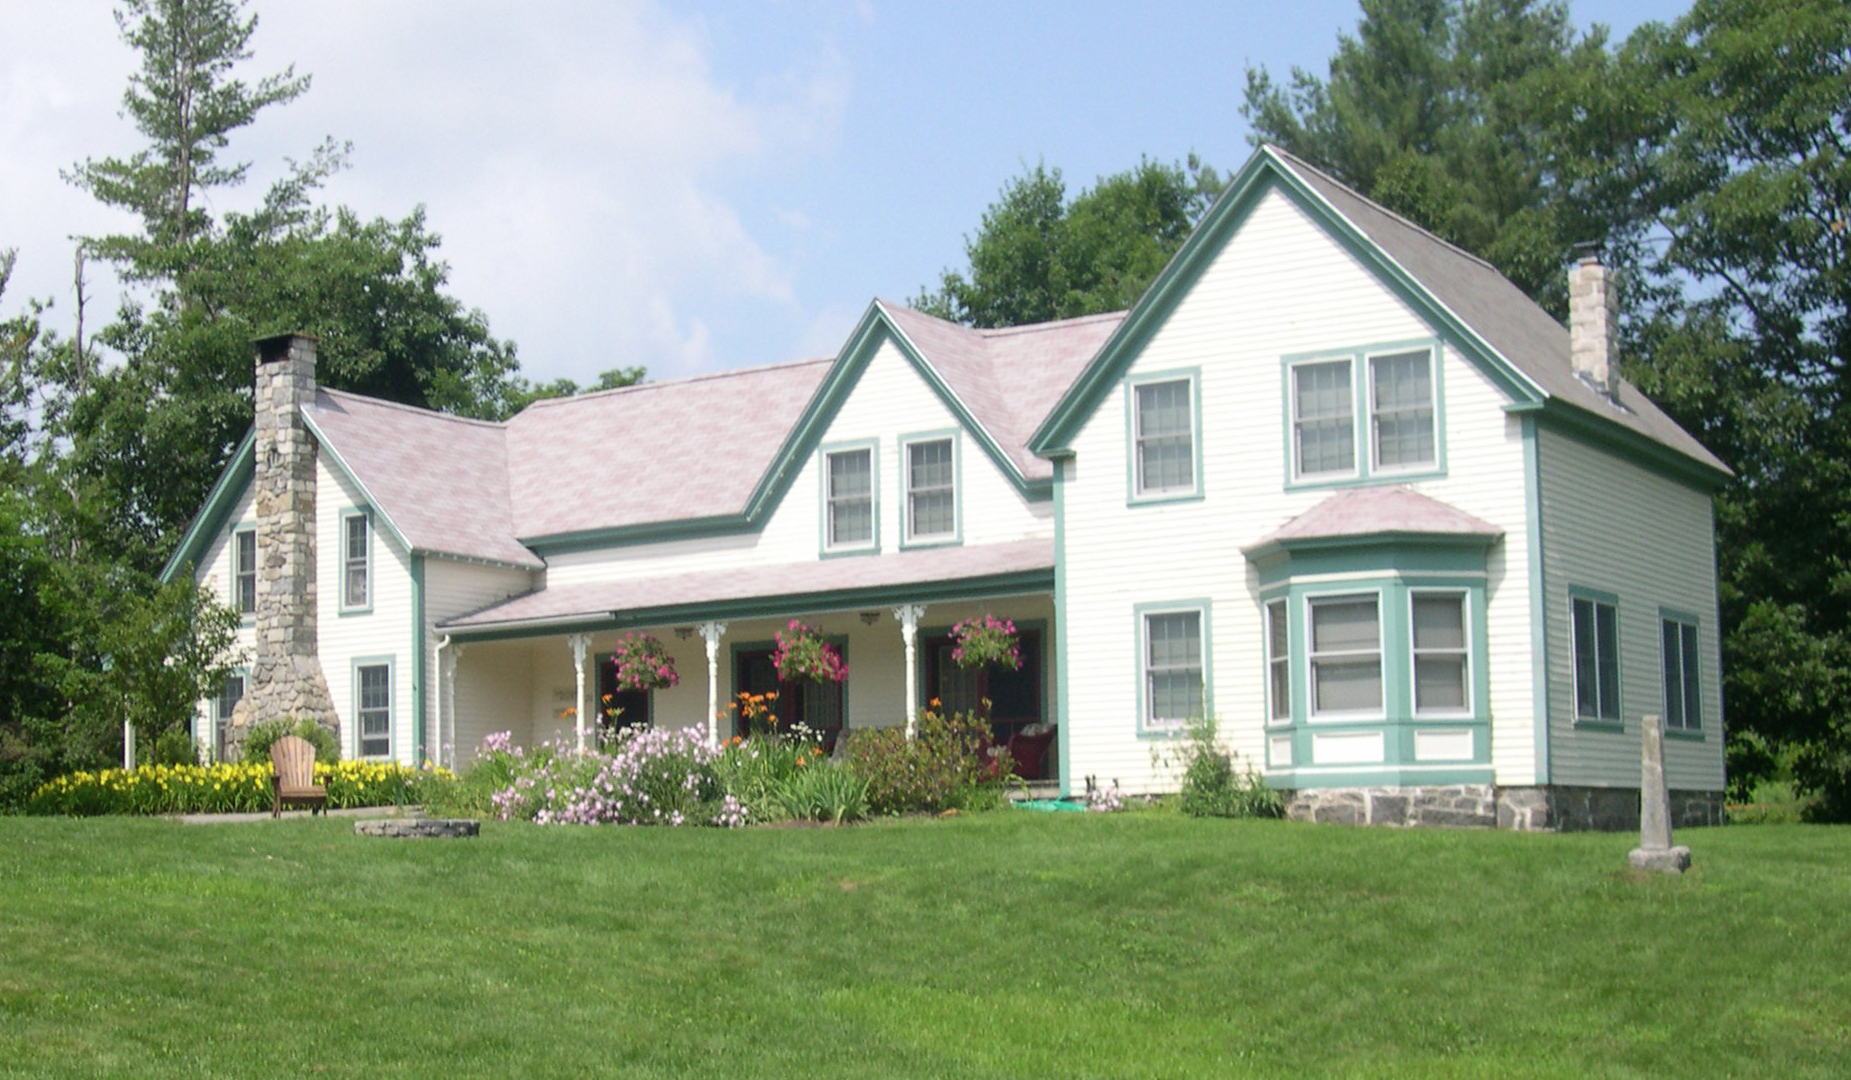 The maine farm house 7 bedroom vacation farm house rental for Maine home plans